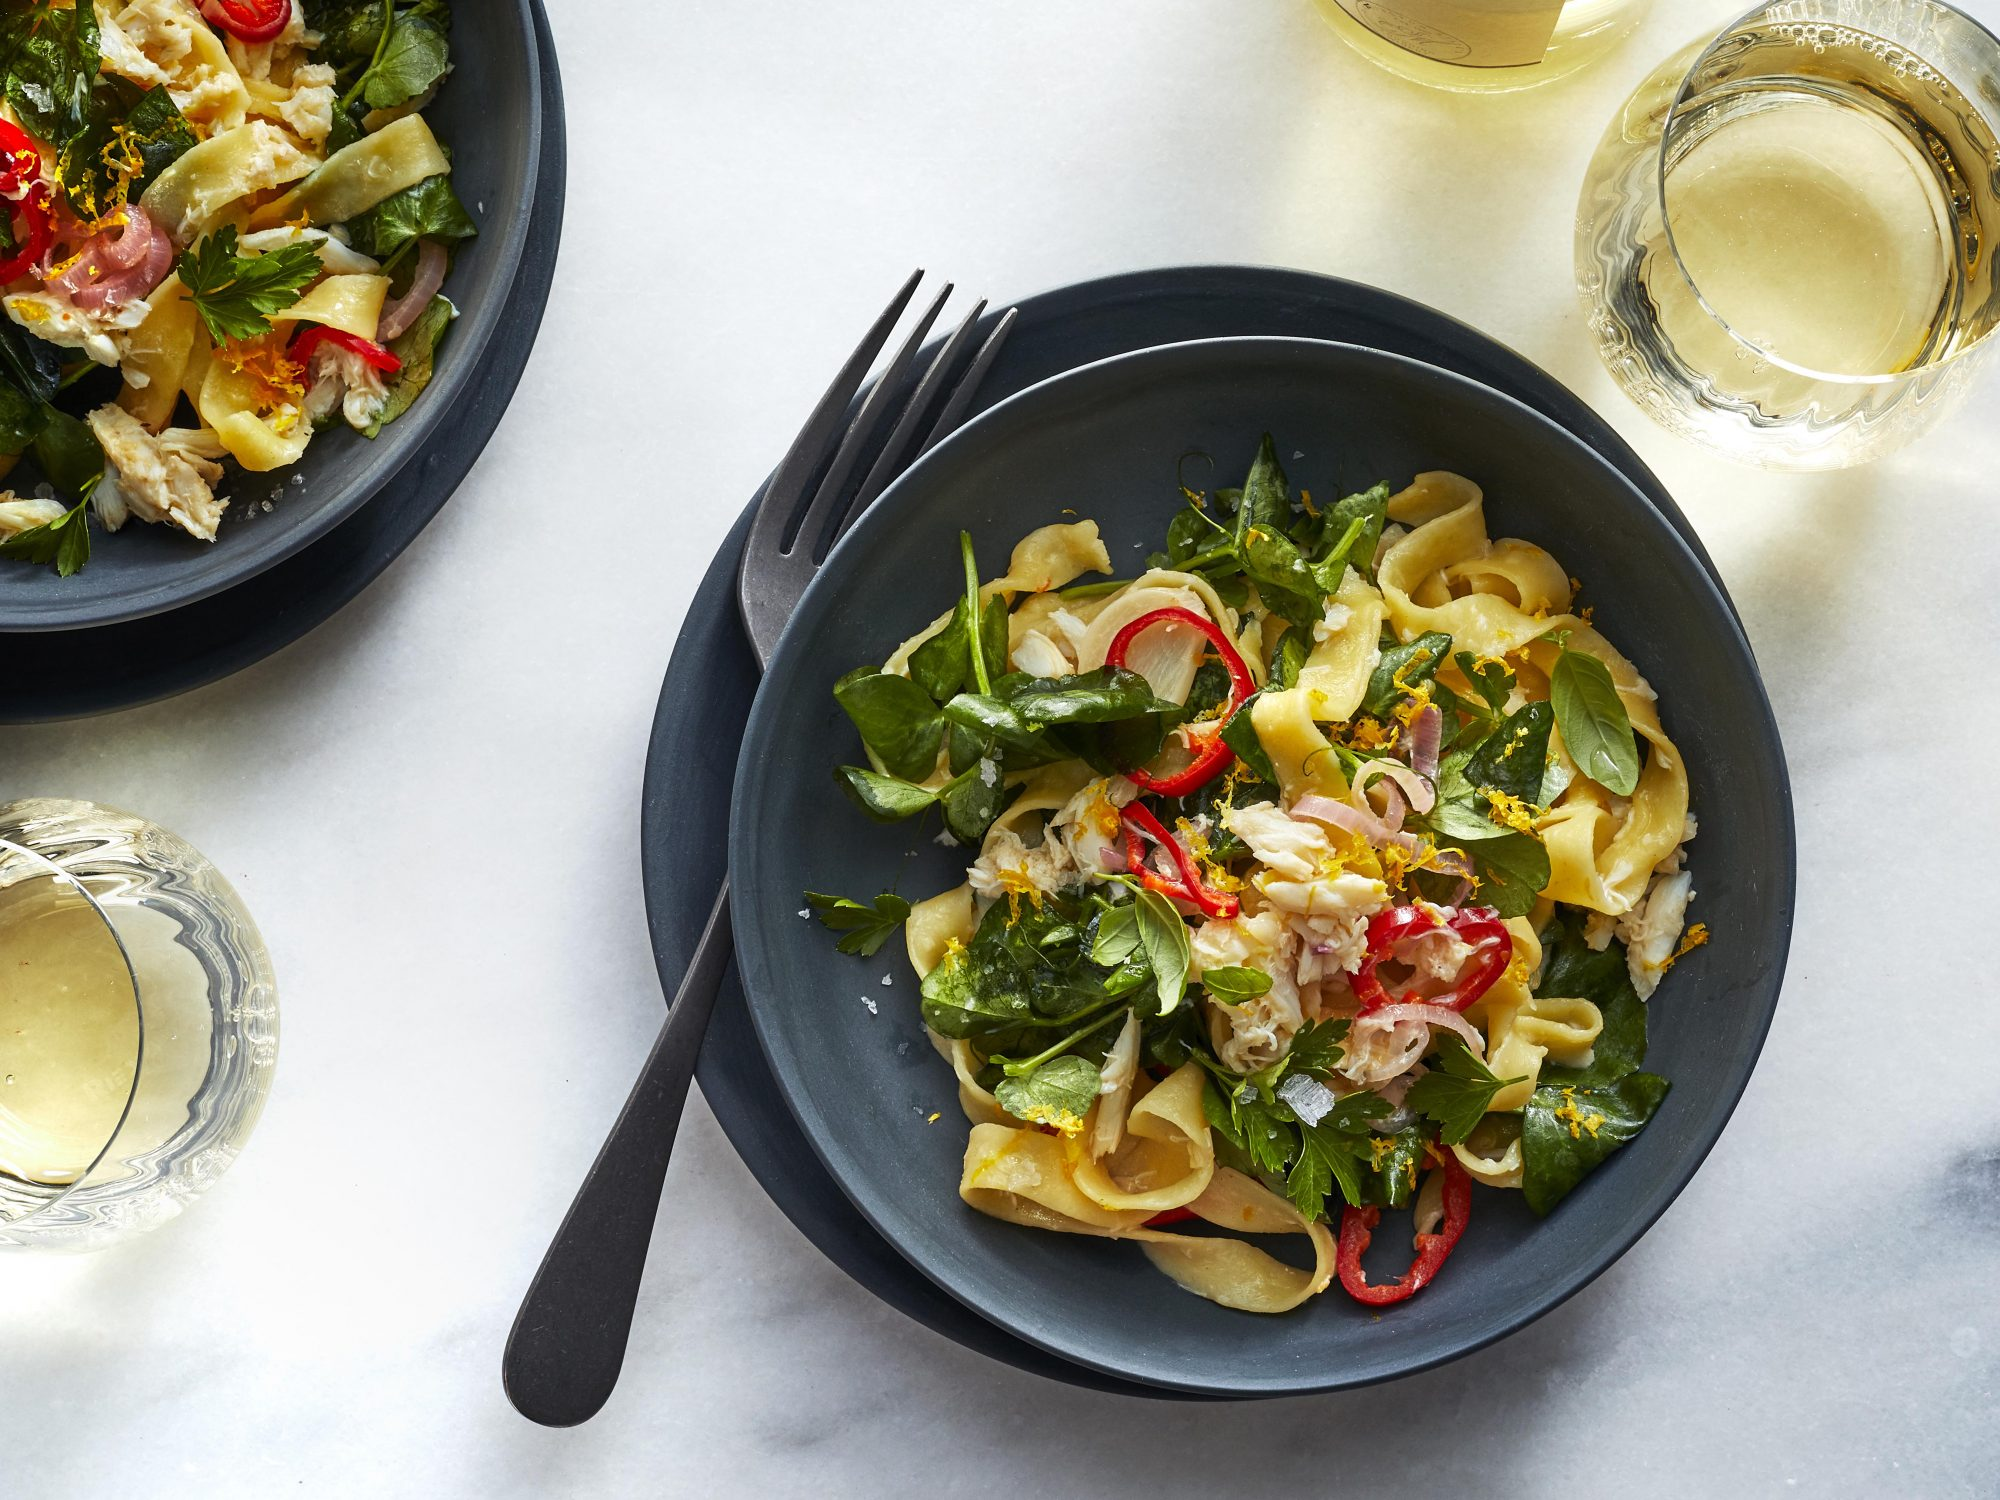 Tagliatelle with Crab, Pea Shoots, and Herbs